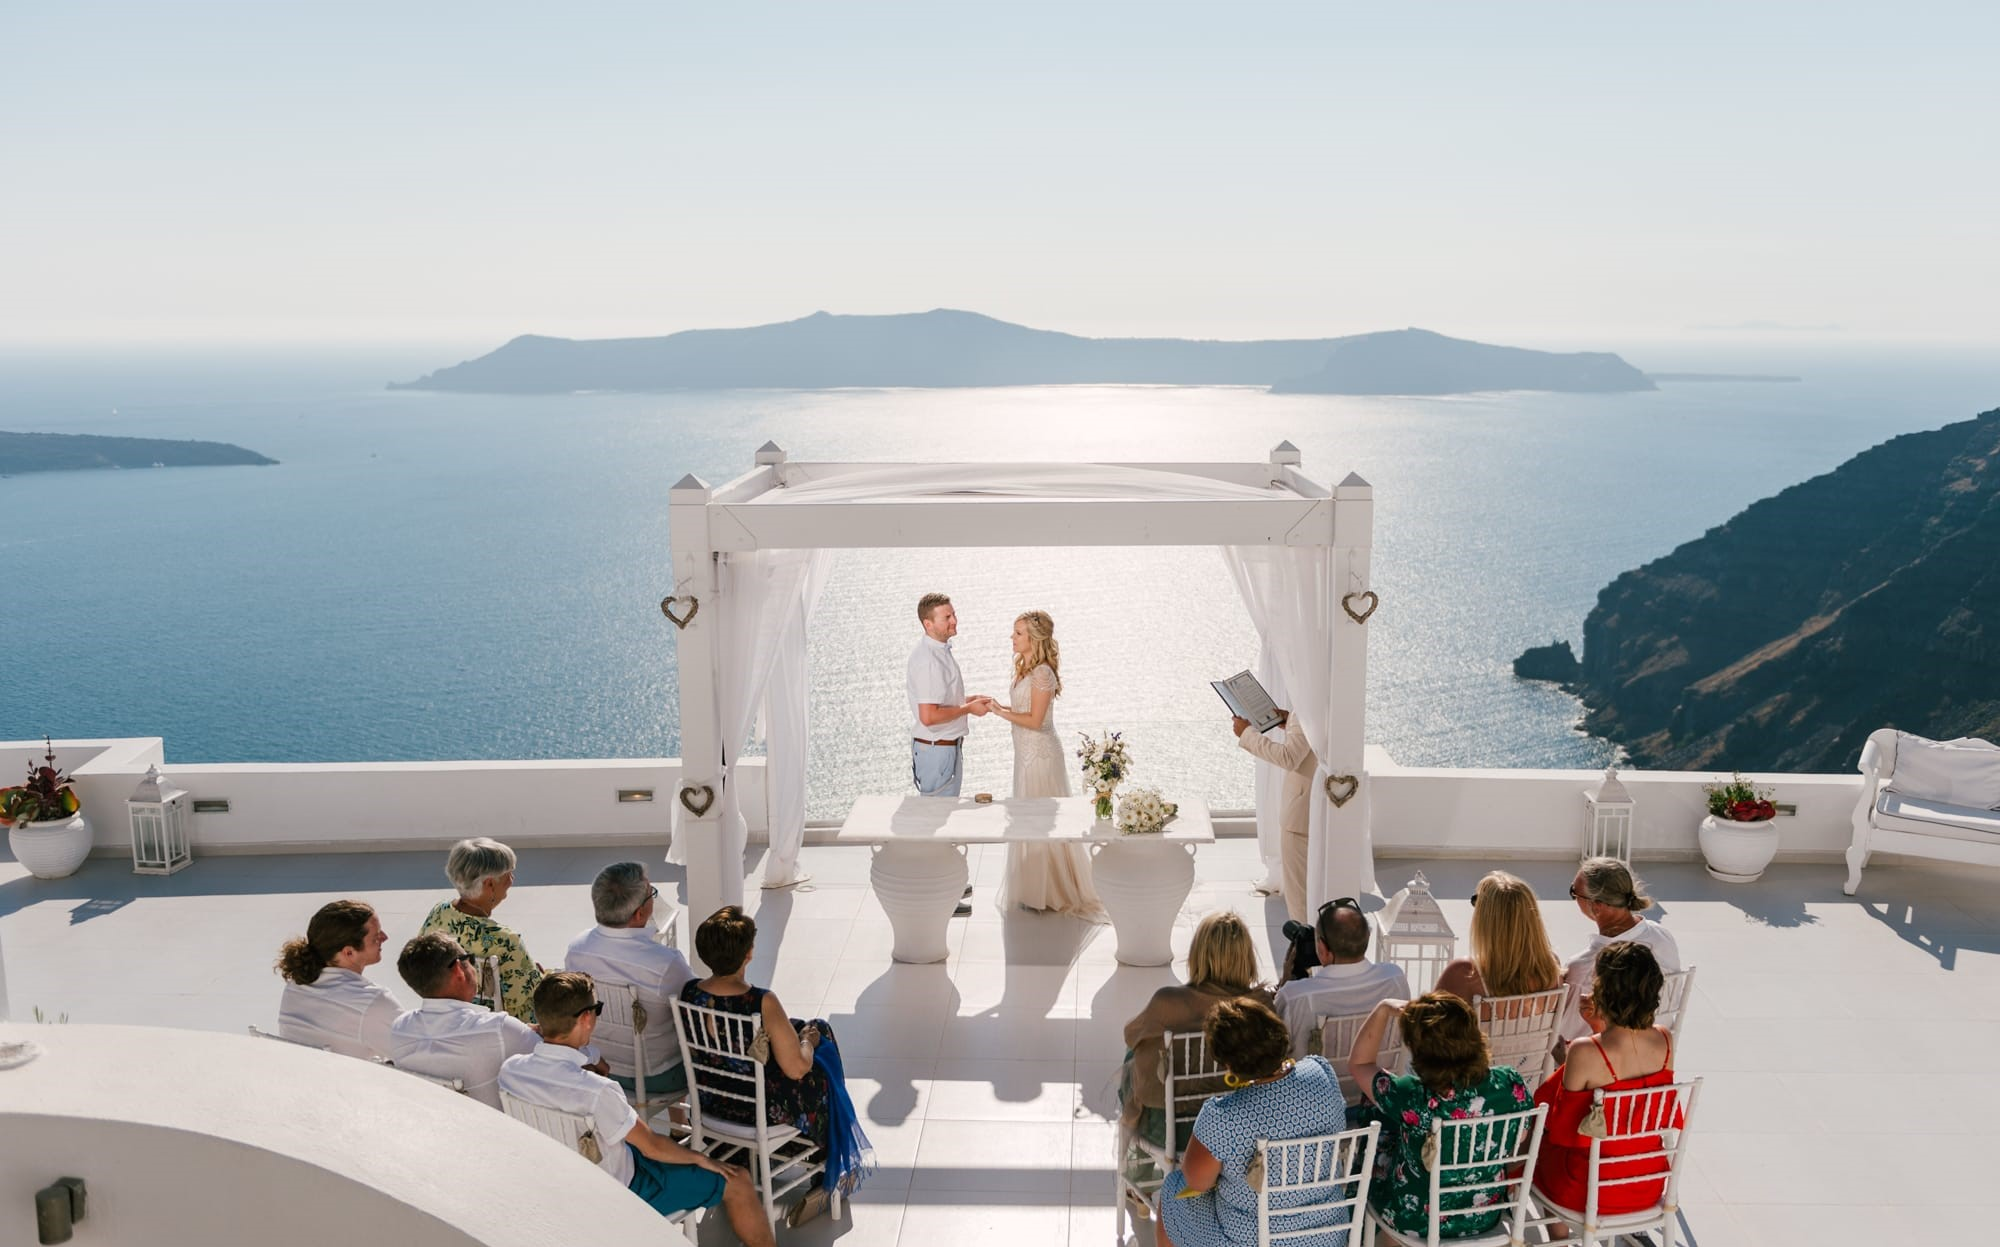 dana villas santorini wedding location 3